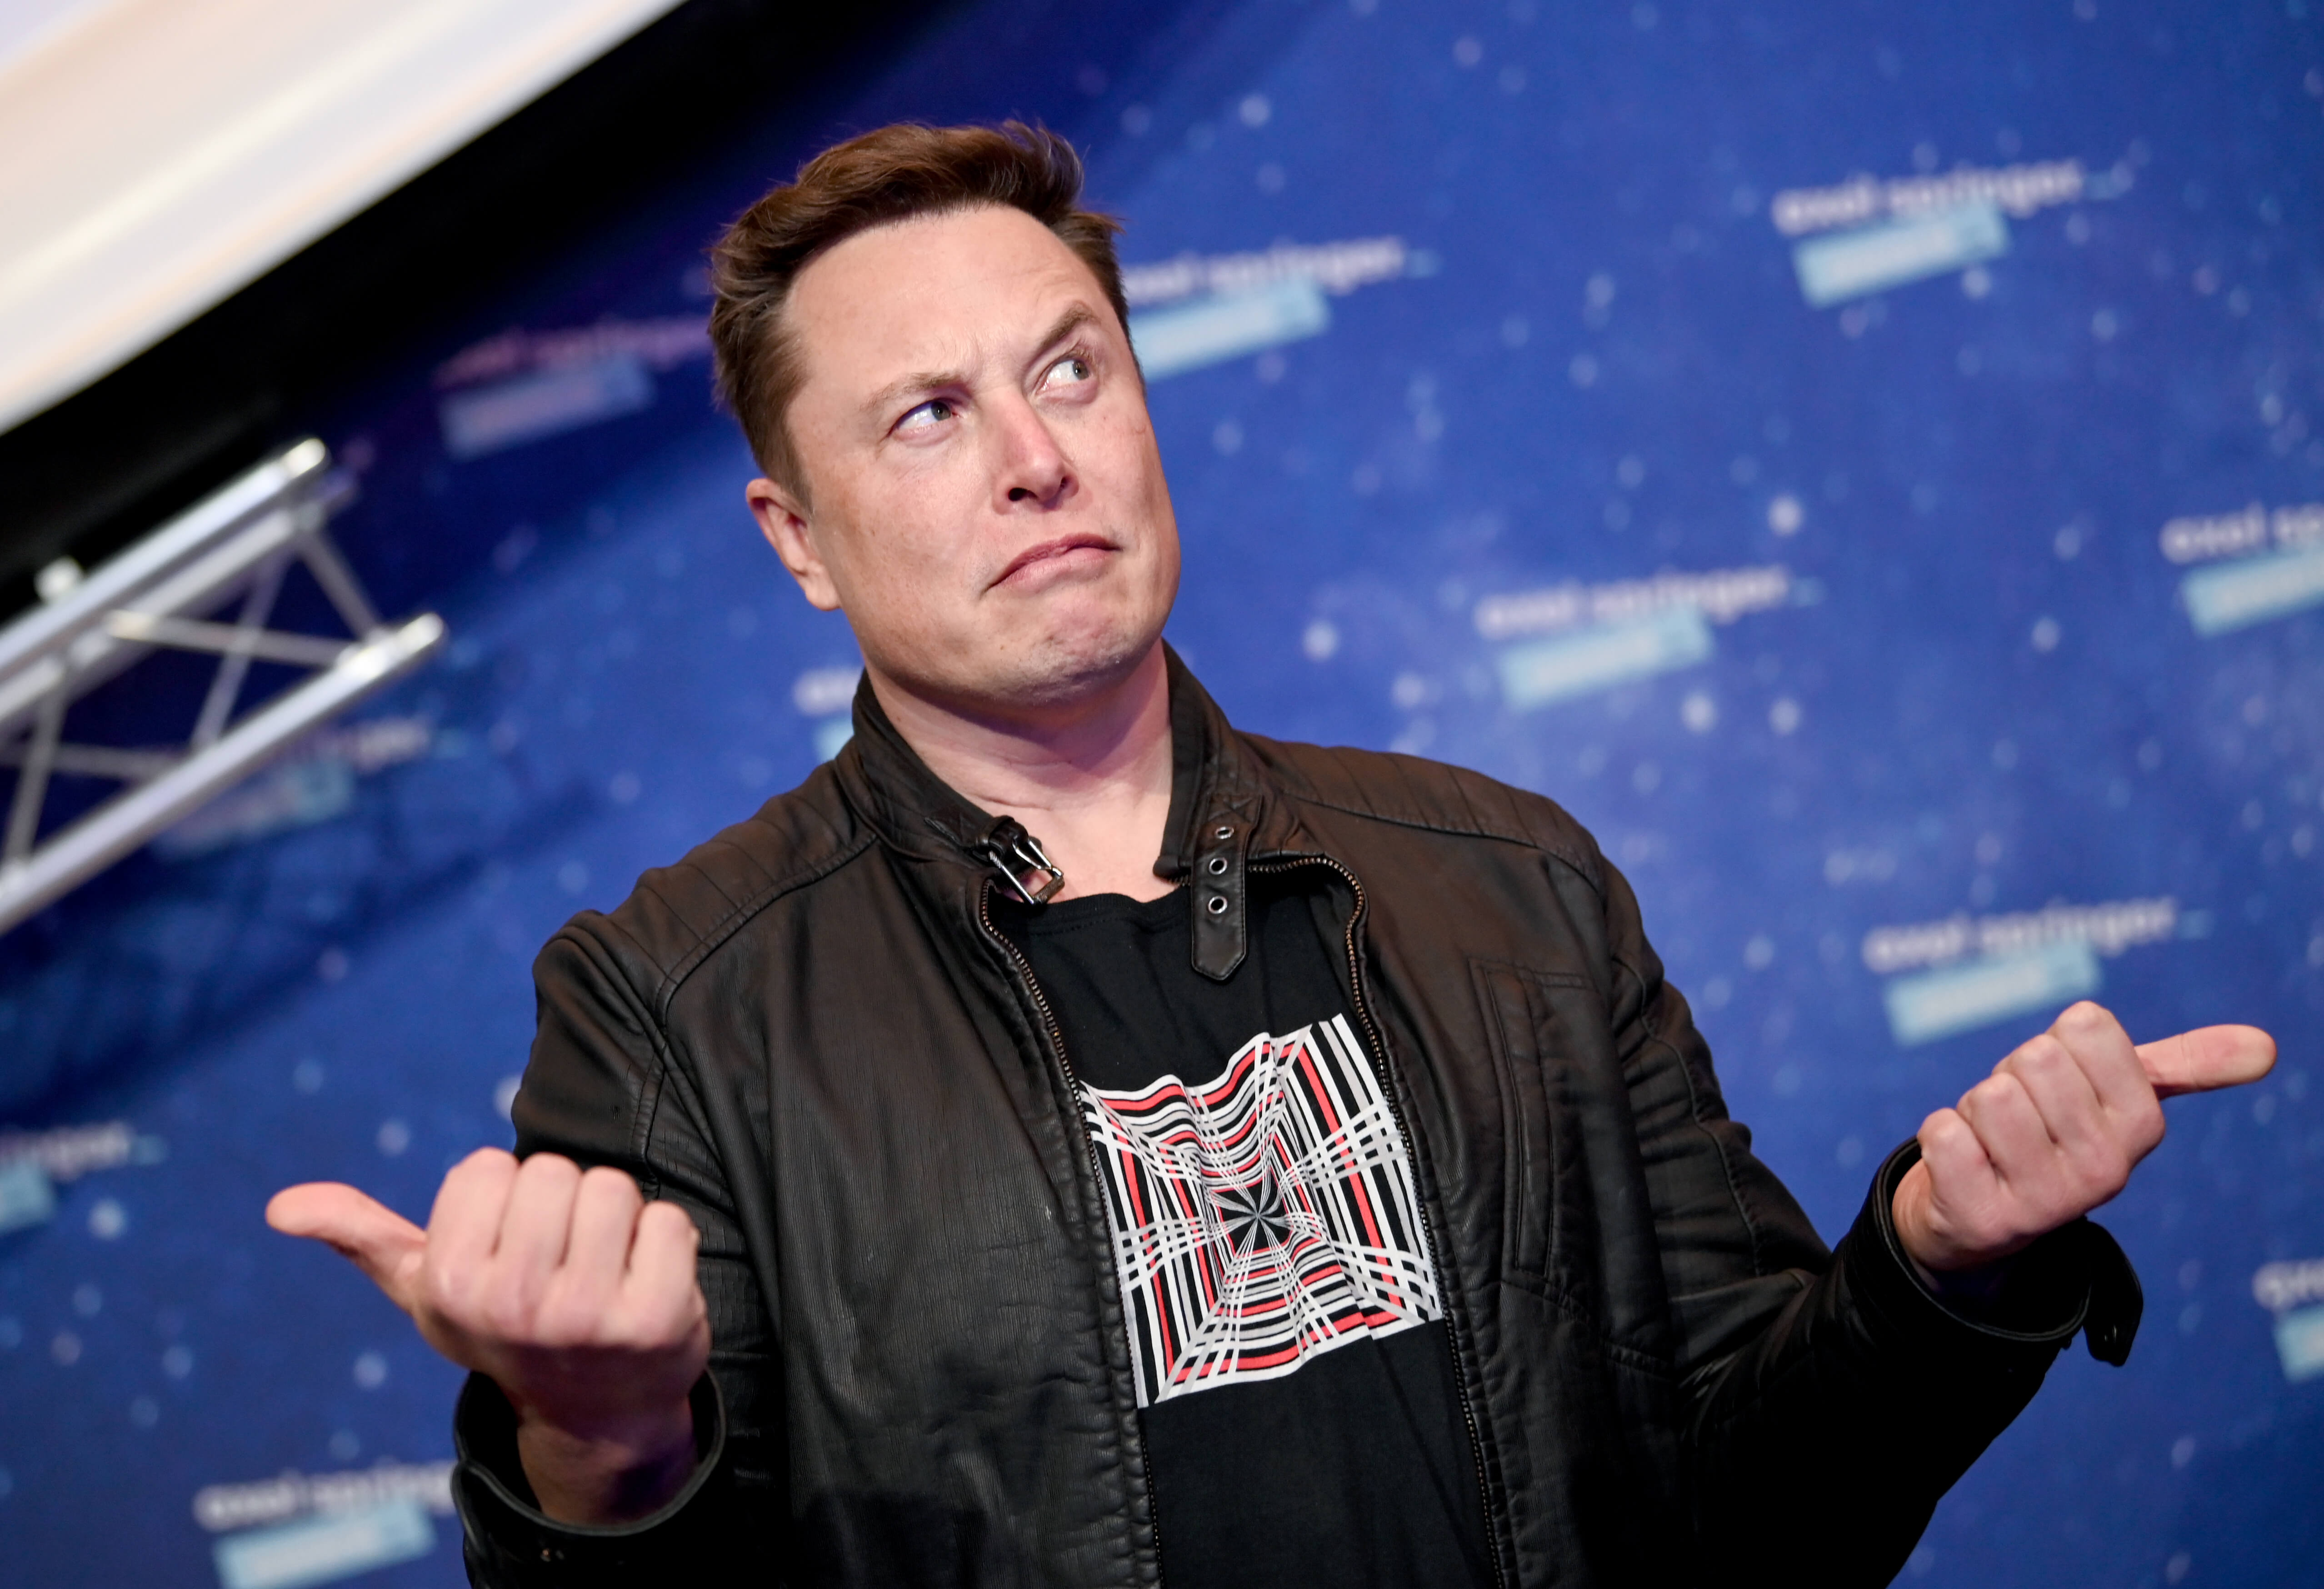 Elon Musk: From international student to world's richest person